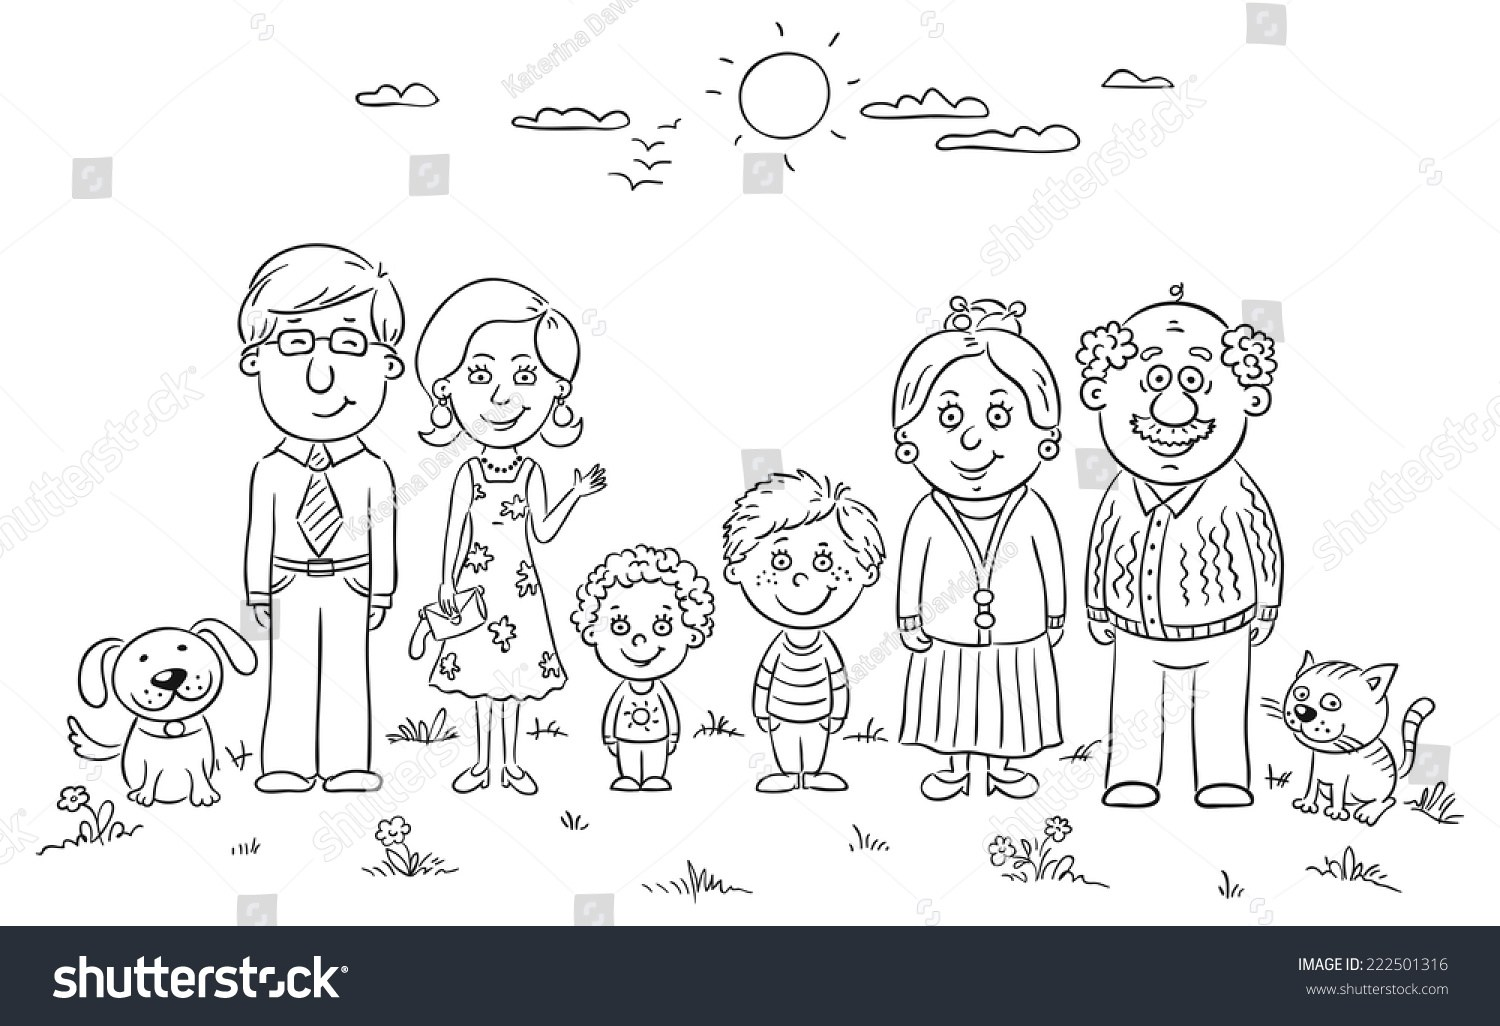 Big family clipart black and white 5 » Clipart Portal.